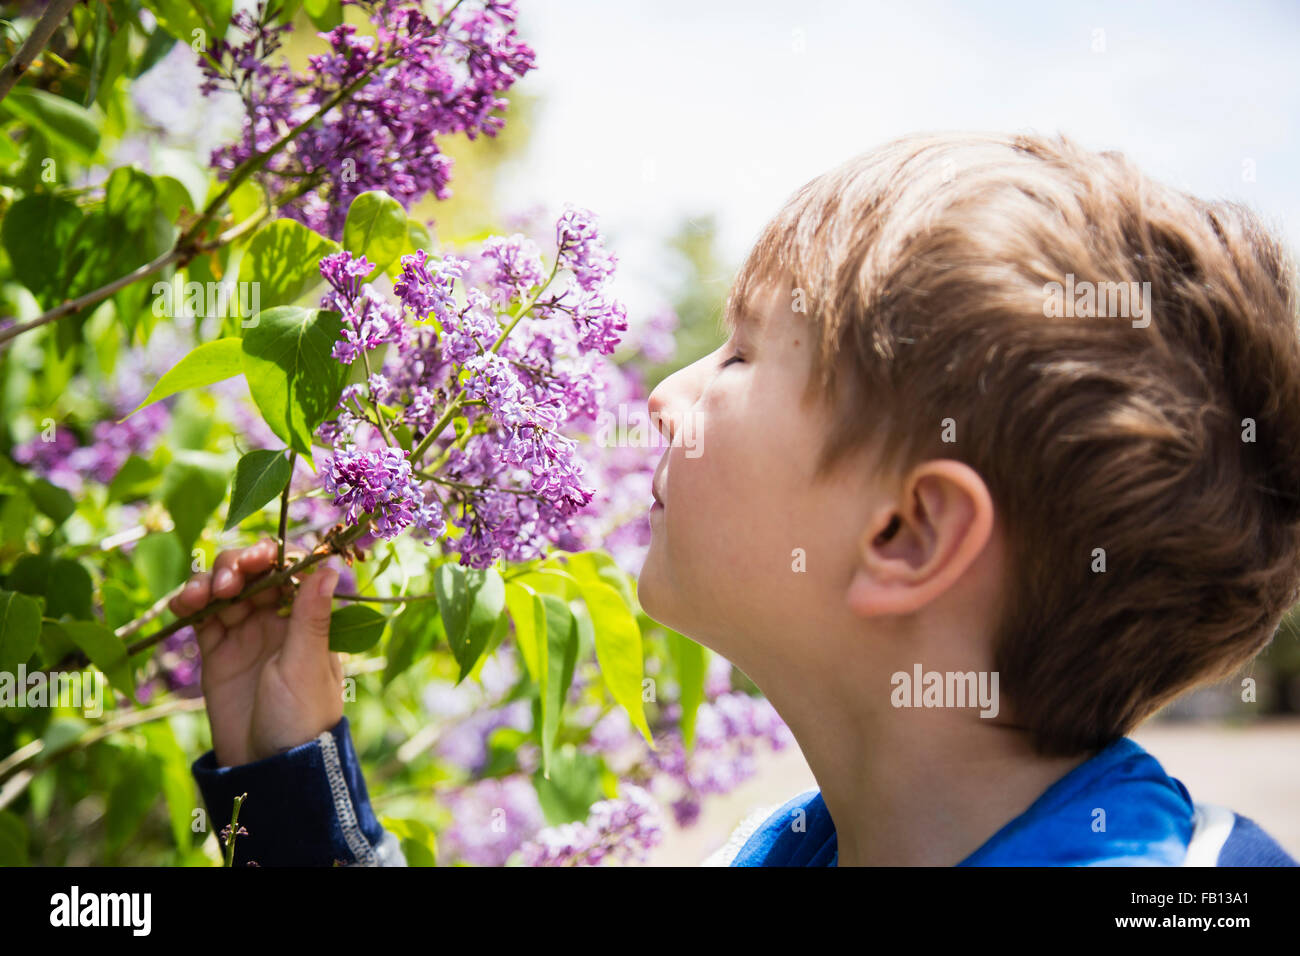 Portrait of boy (6-7) smelling flowers - Stock Image